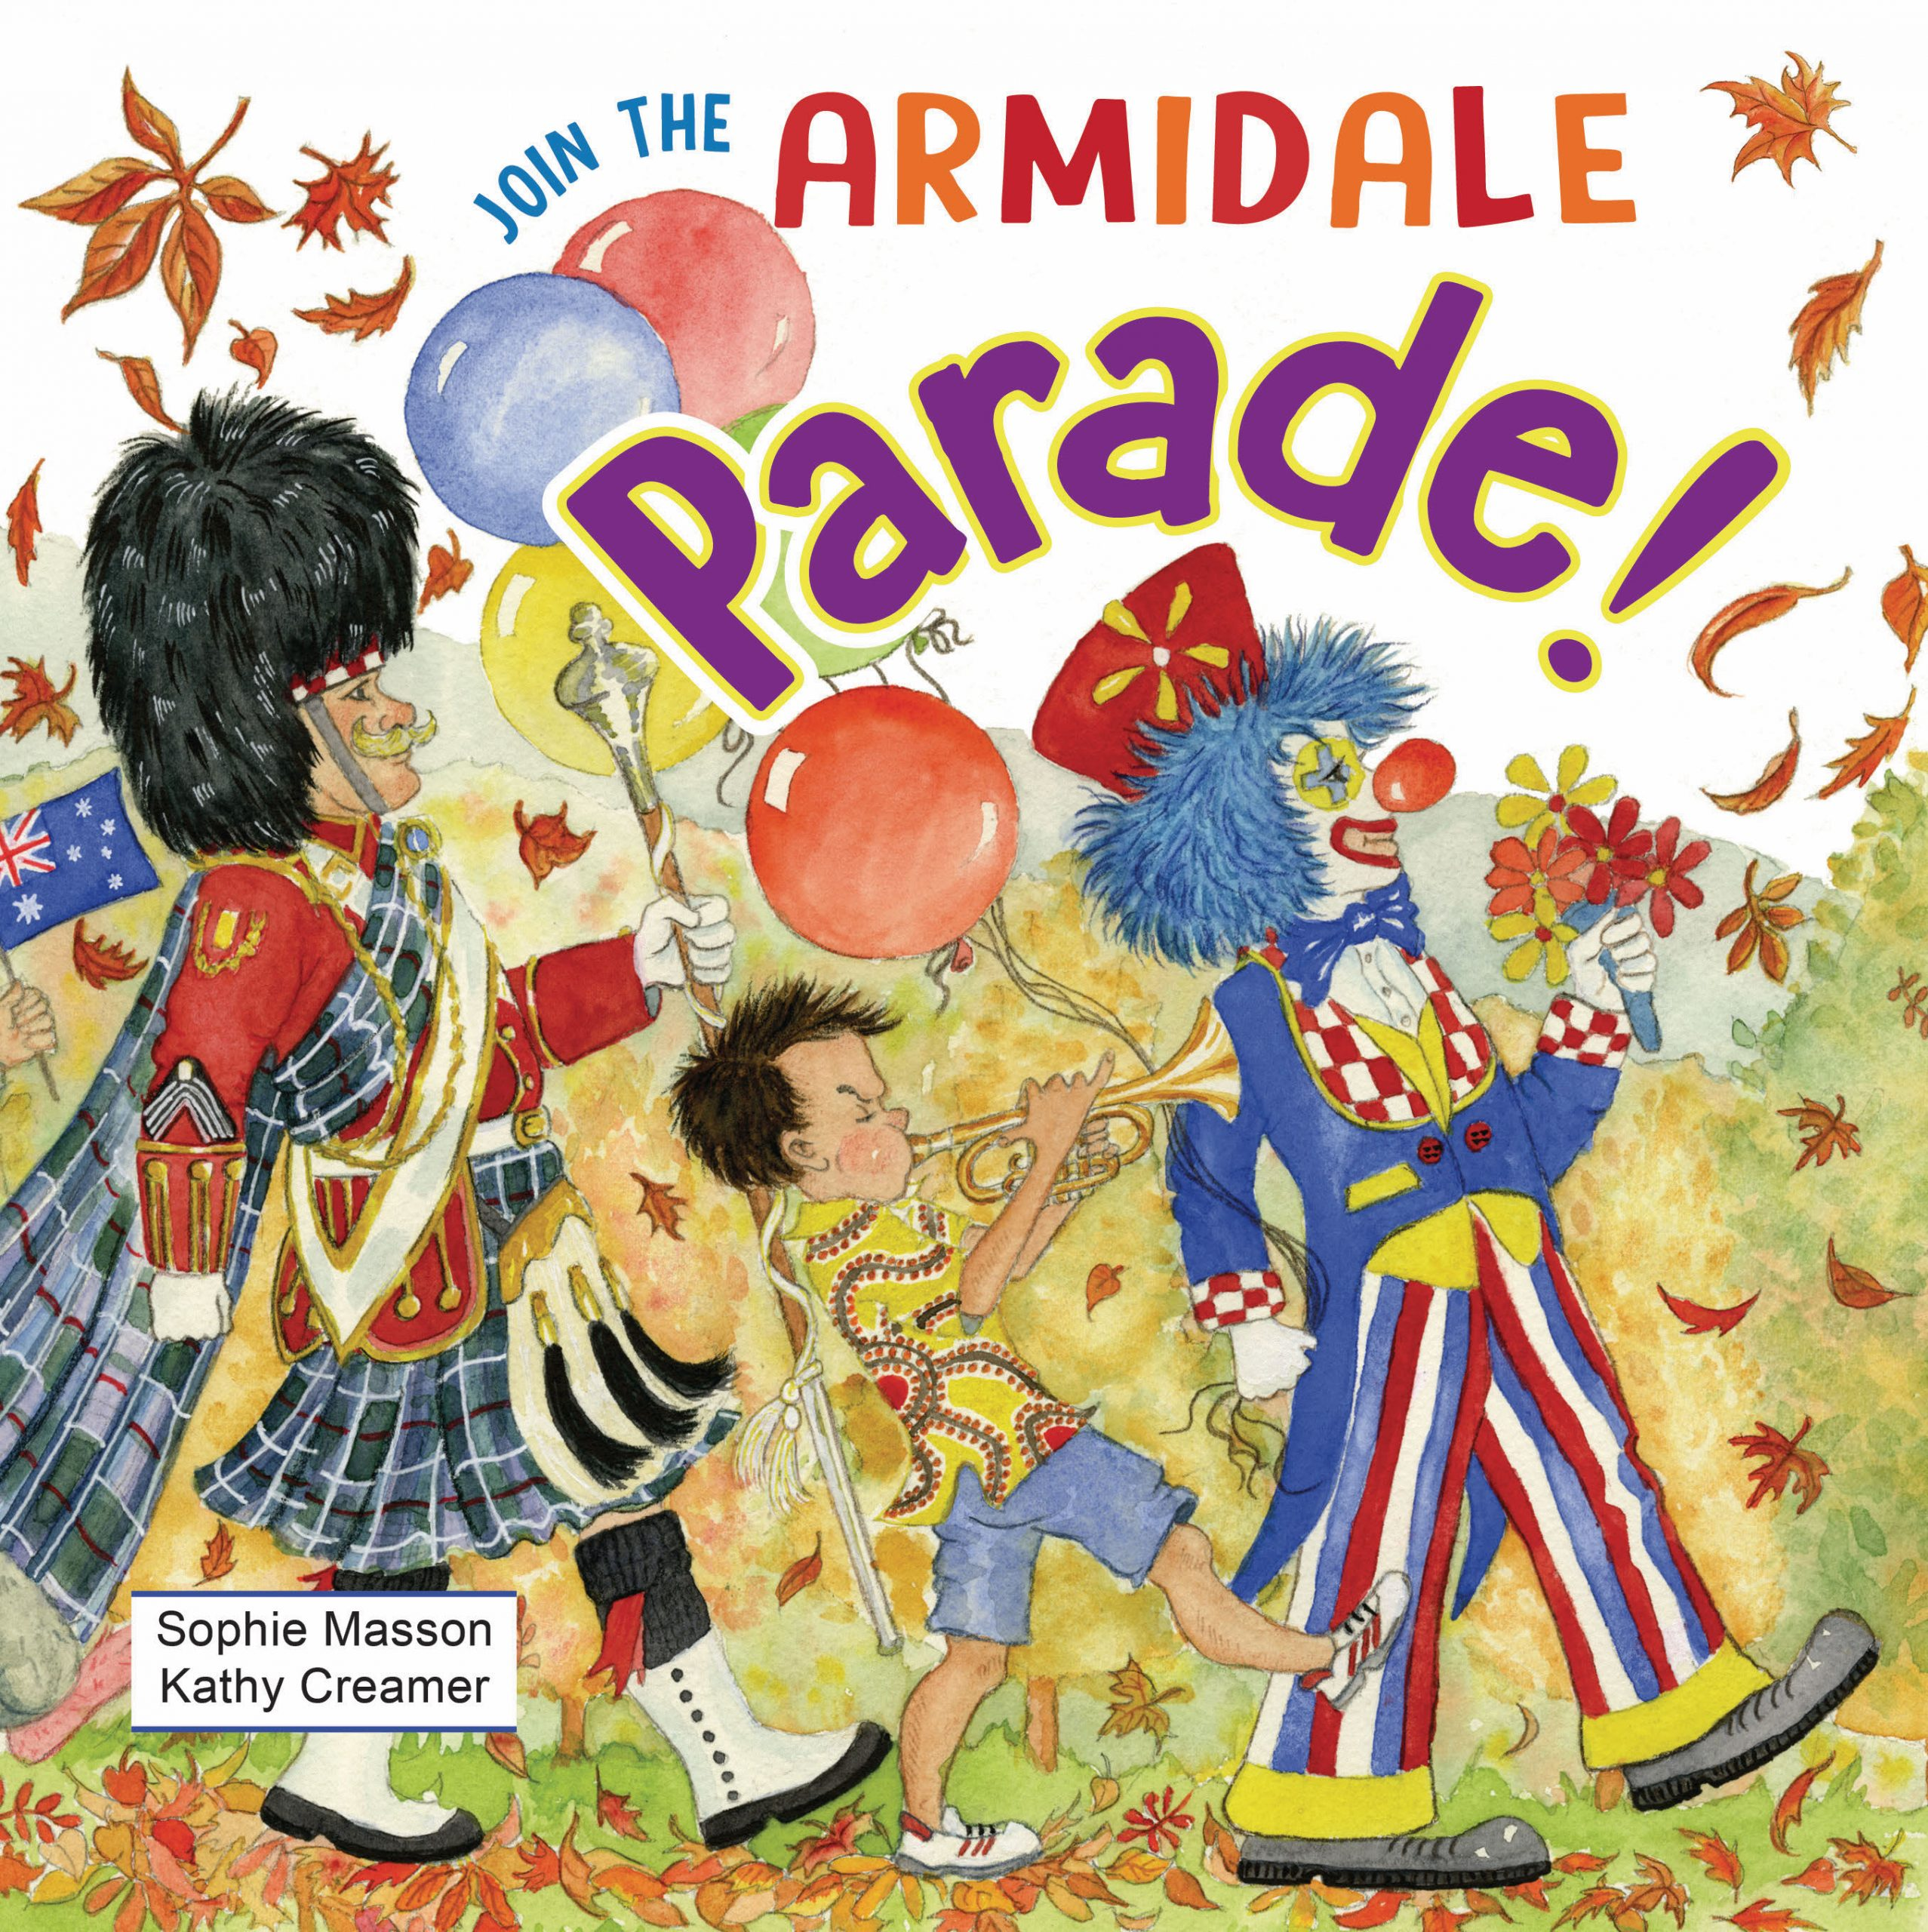 Join The Armidale Parade!